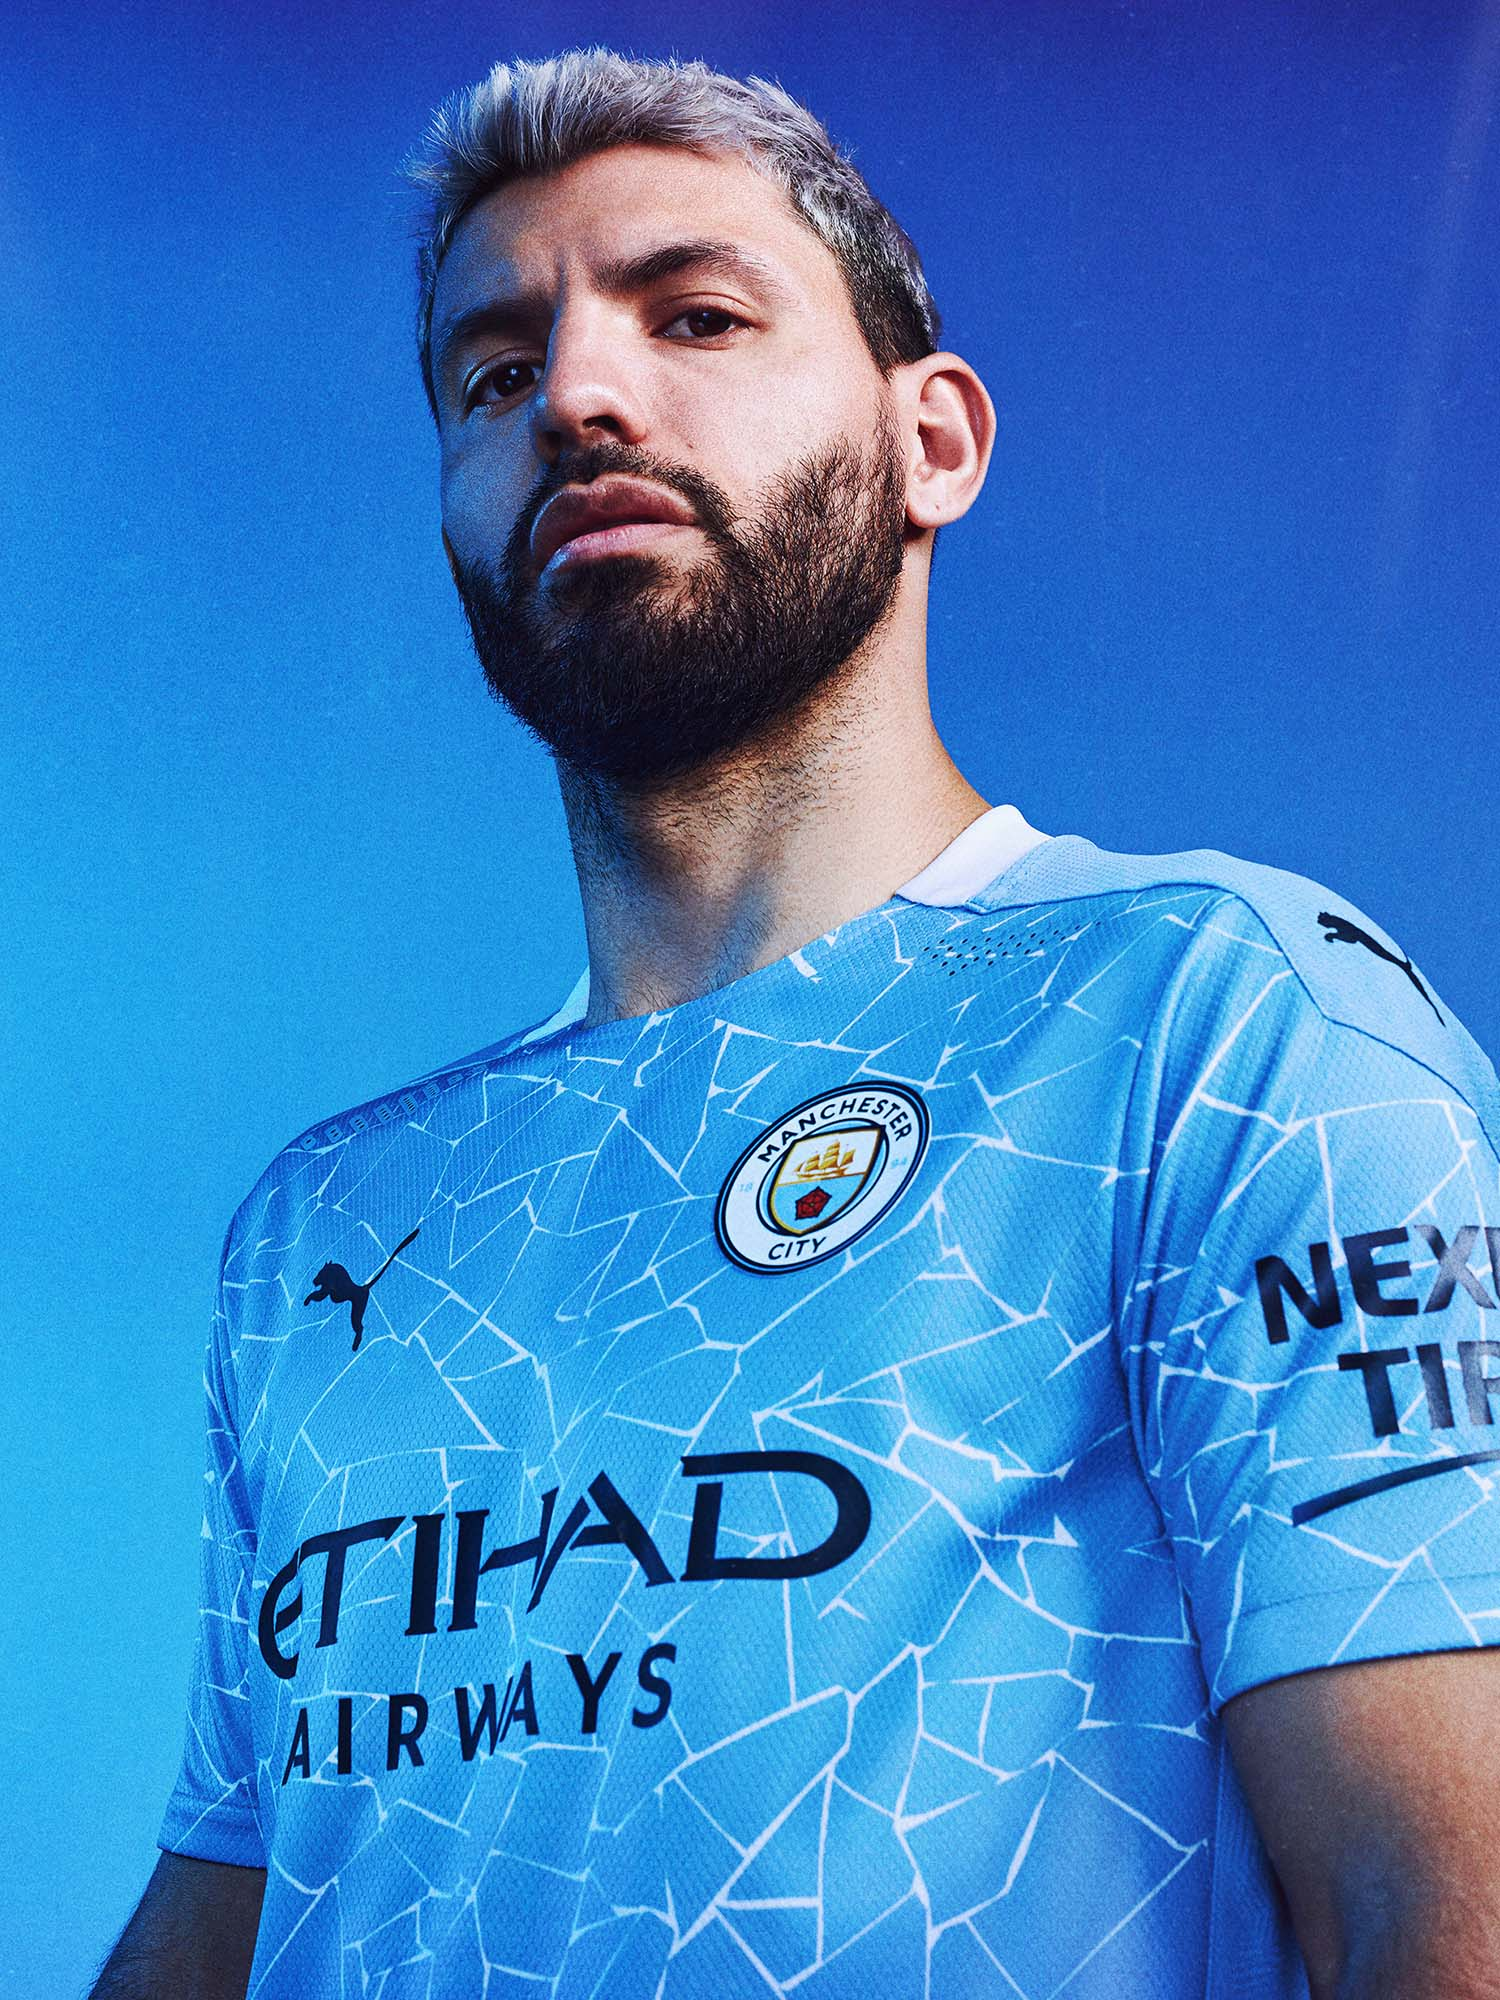 man city 21 home soccerbible portrait_0001_20AW_PR_TS_Manchester-City_HOME_Aguero_clean_1.jpg